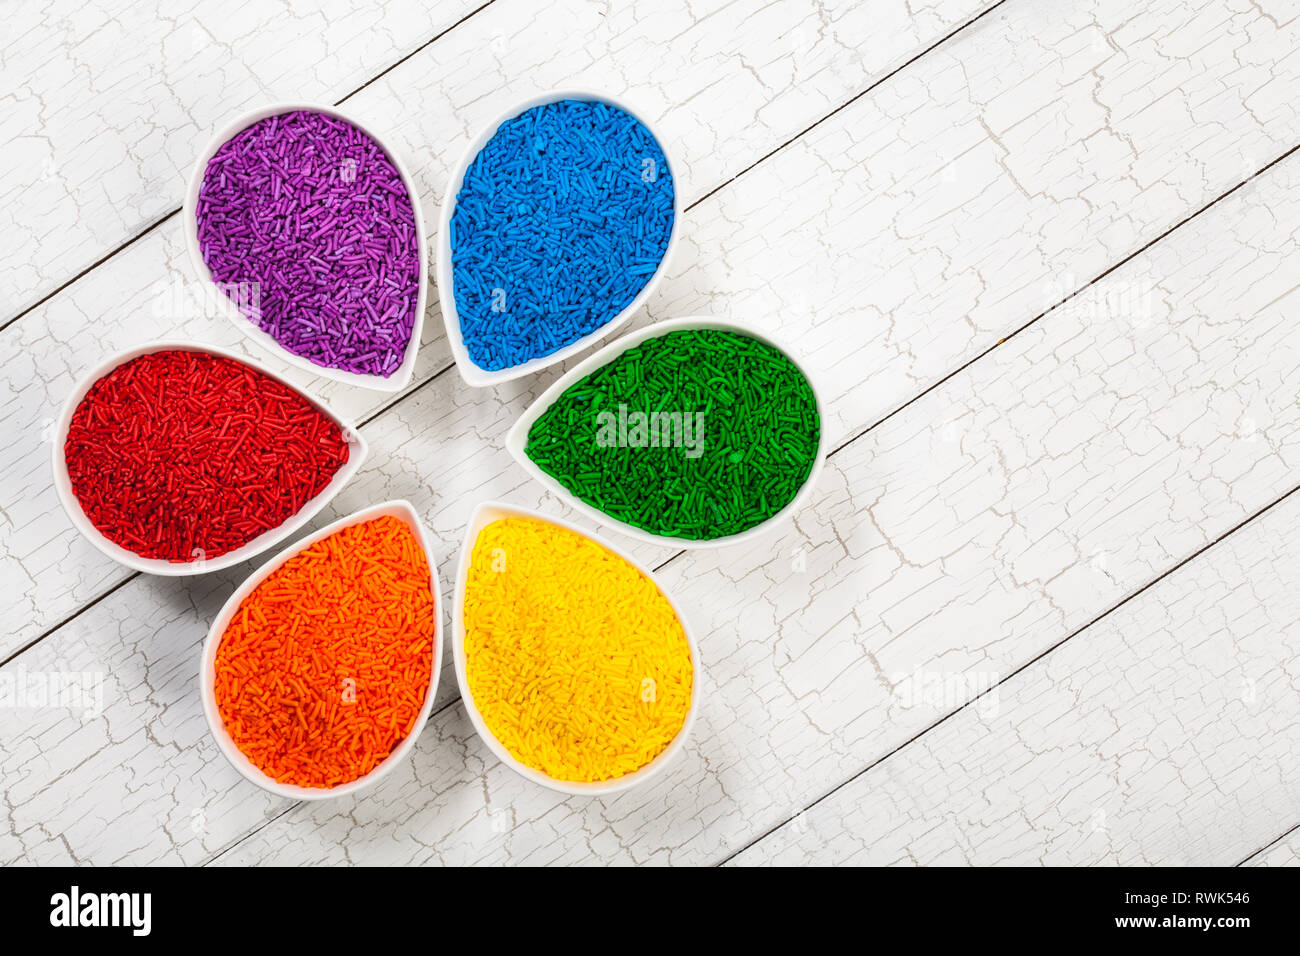 A rainbow assortment of colourful baking sprinkles used for decorating cookies and cakes in petal shaped bowls - Stock Image